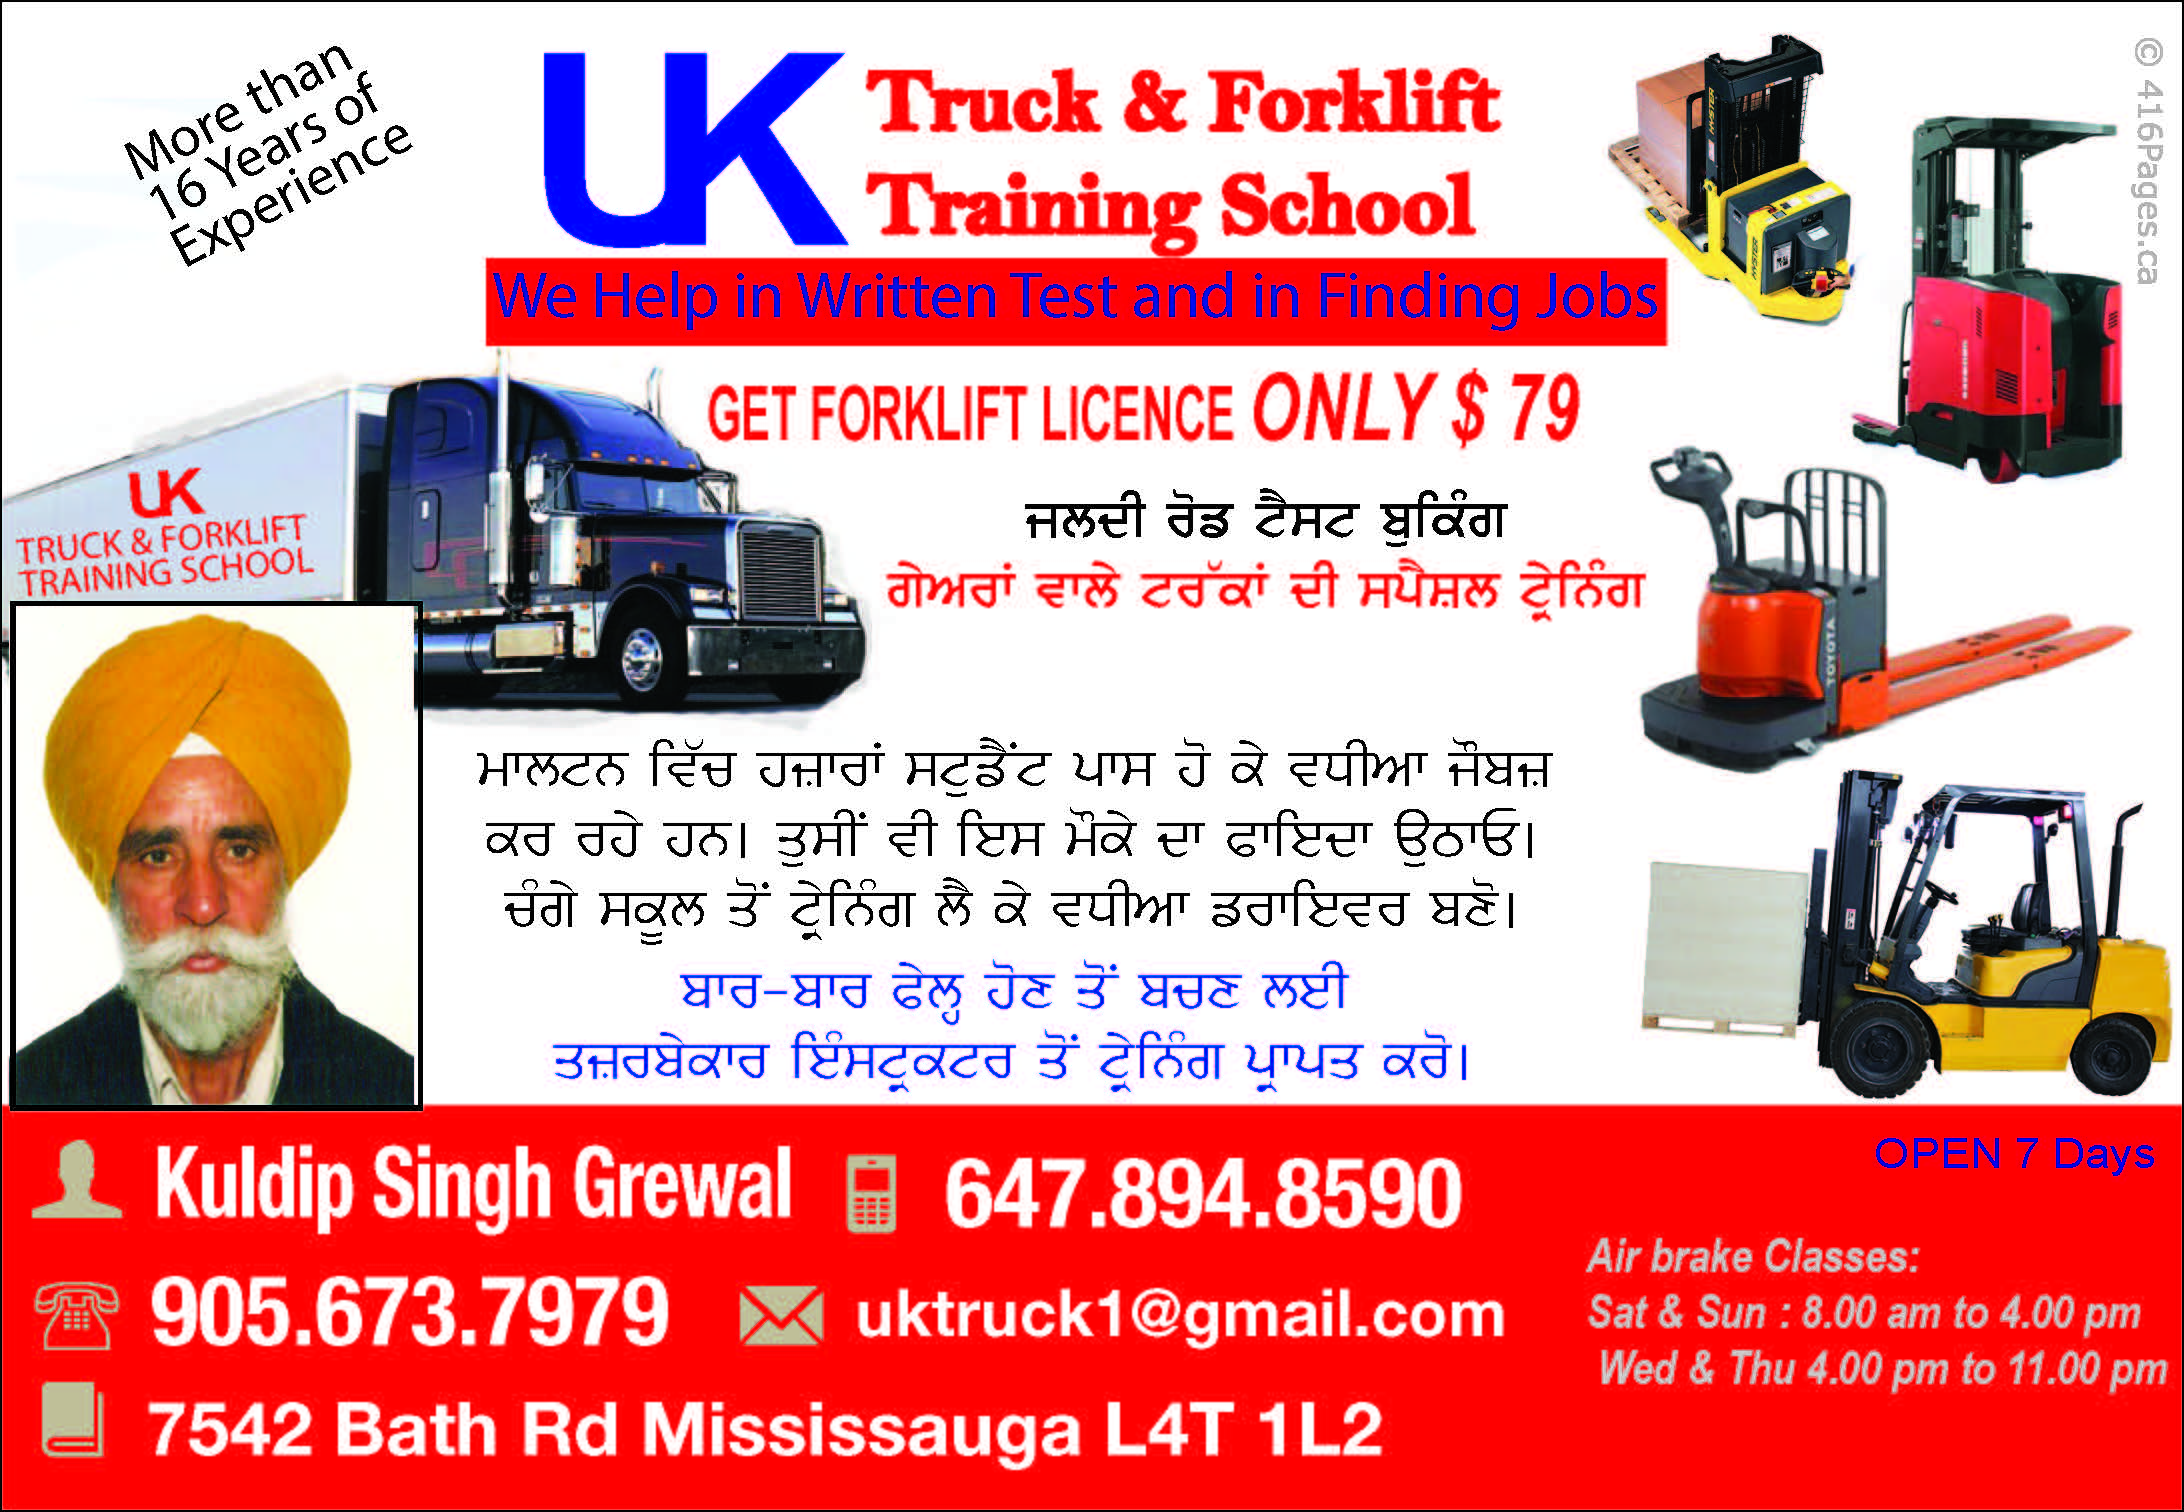 Uk truck forklift training school 416 pages uk truck forklift training school sciox Choice Image